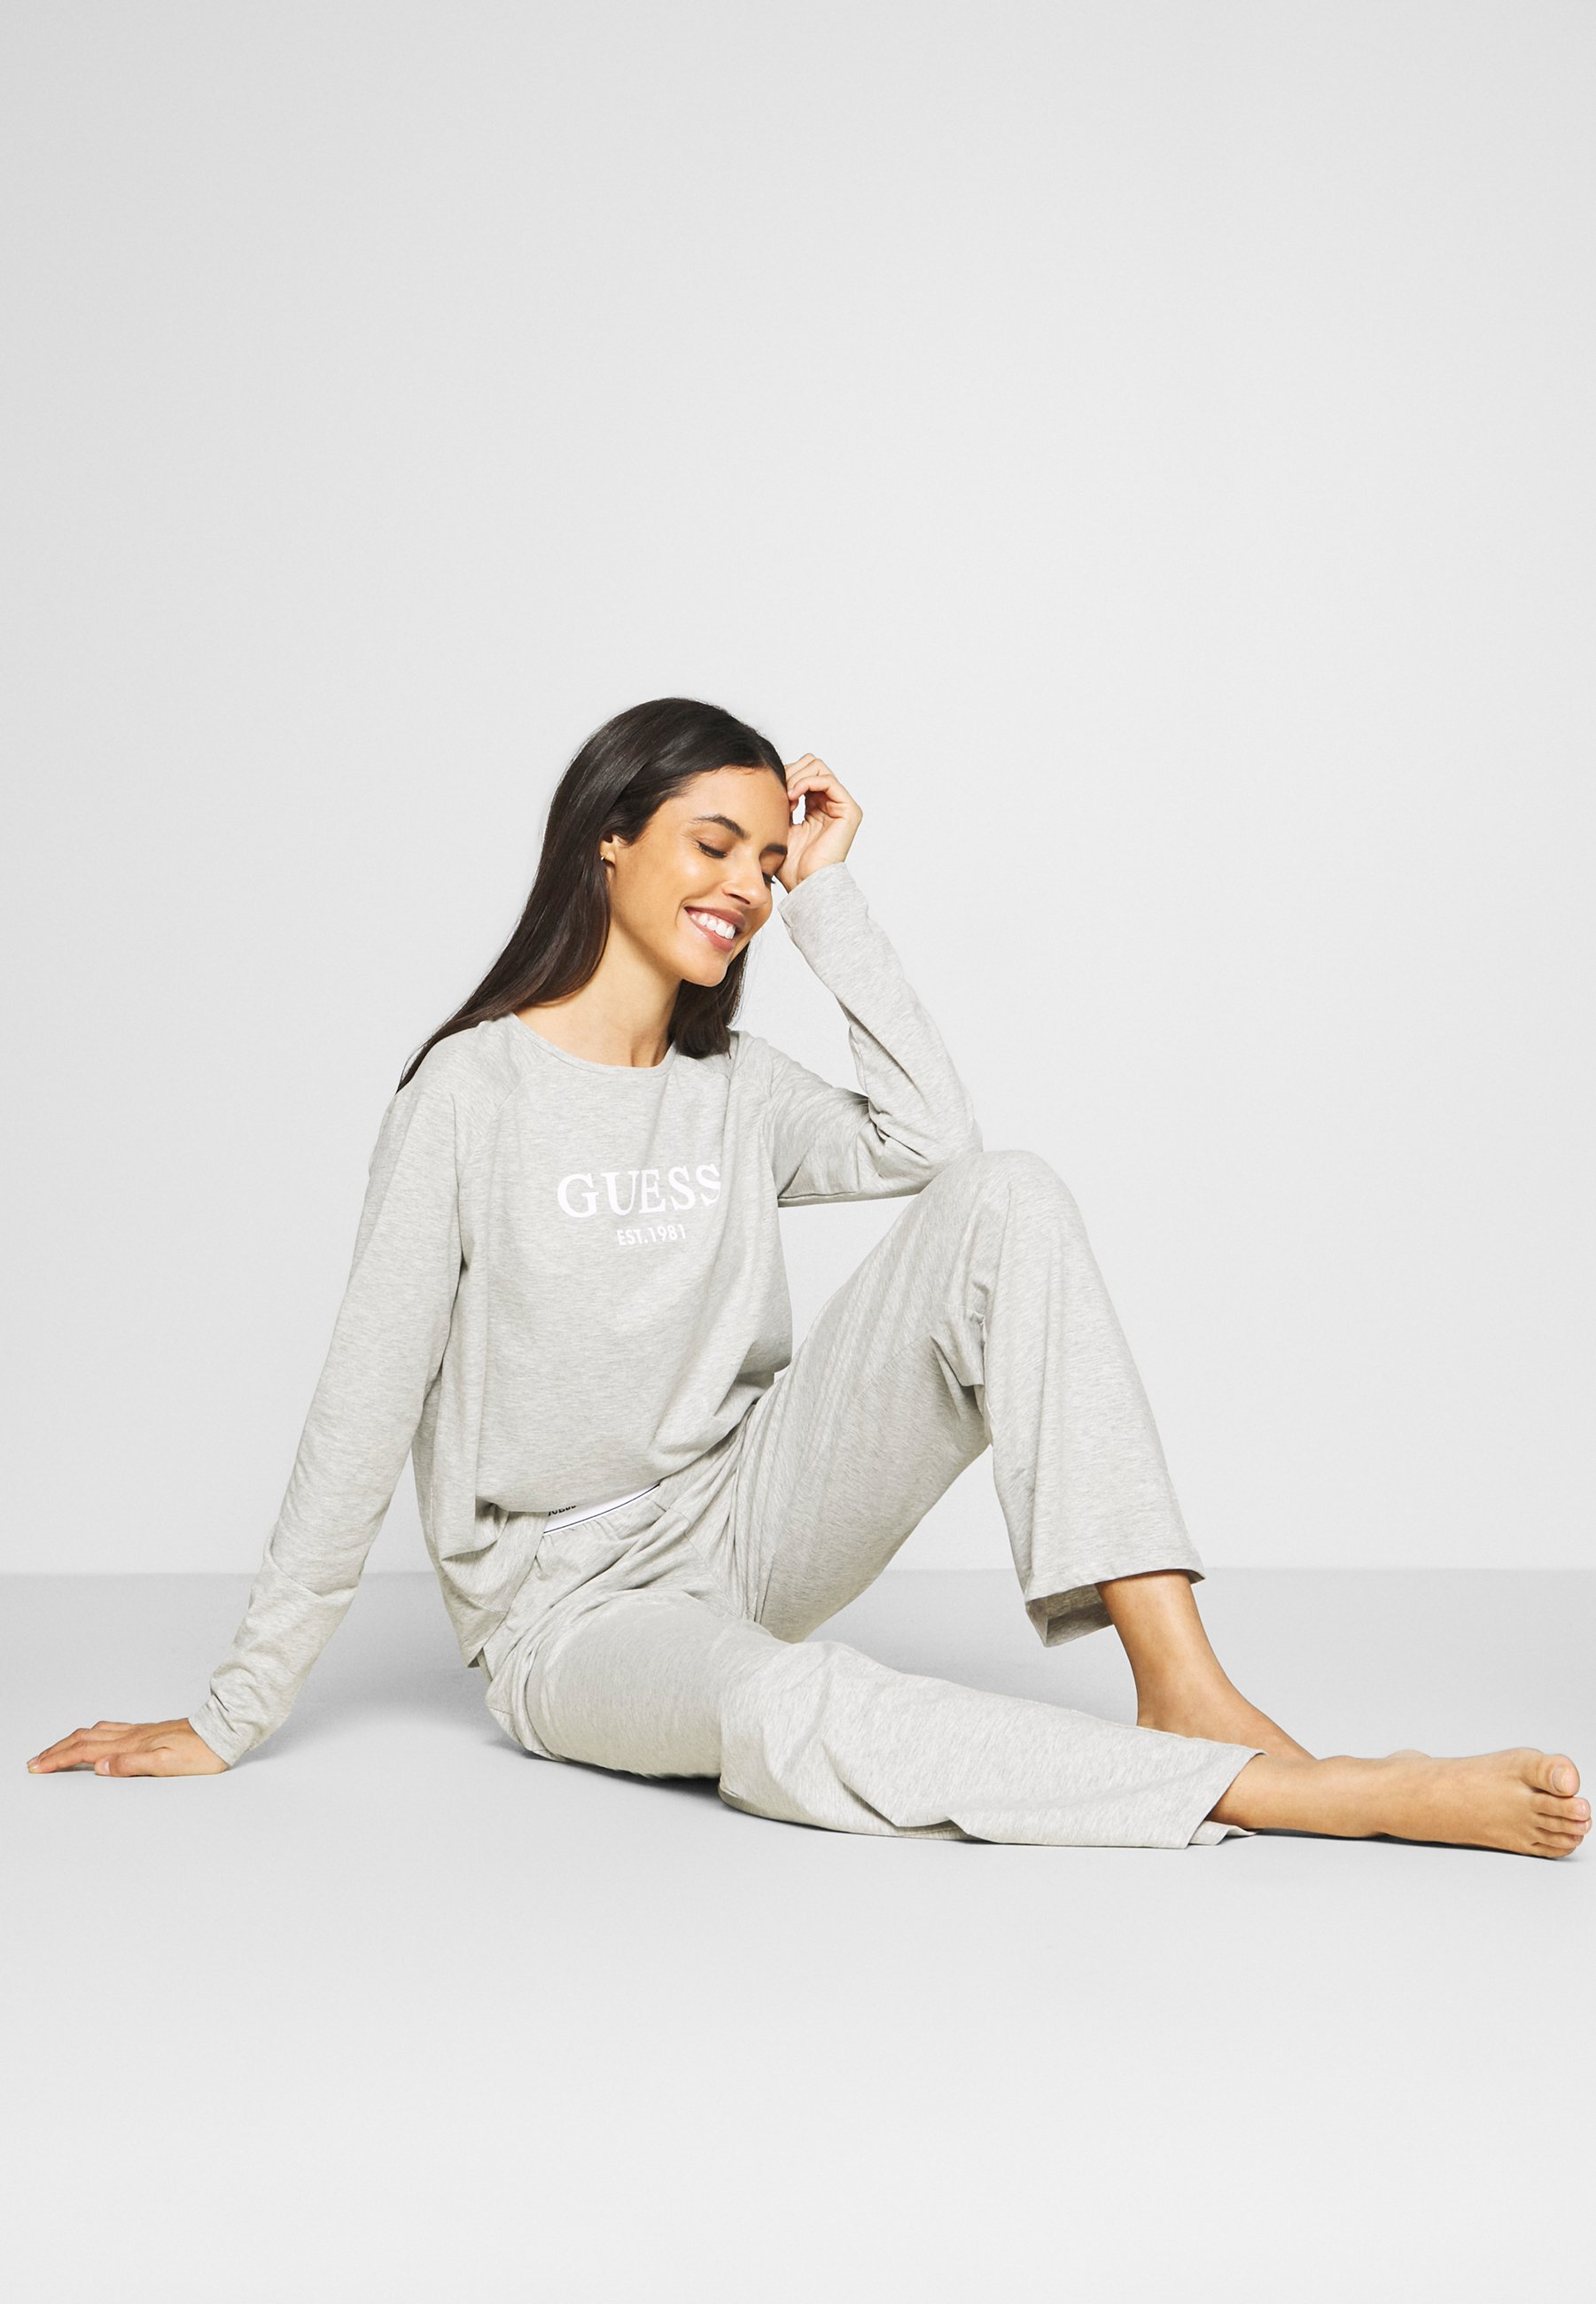 Guess Crew Neck - Pyjamasoverdel Grey/grå